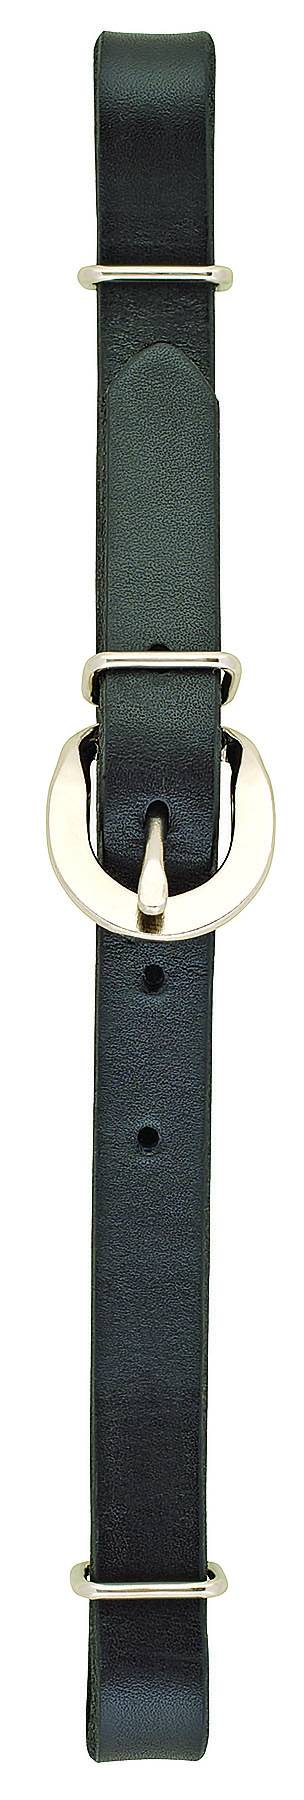 Weaver Straight Leather Curb Straps